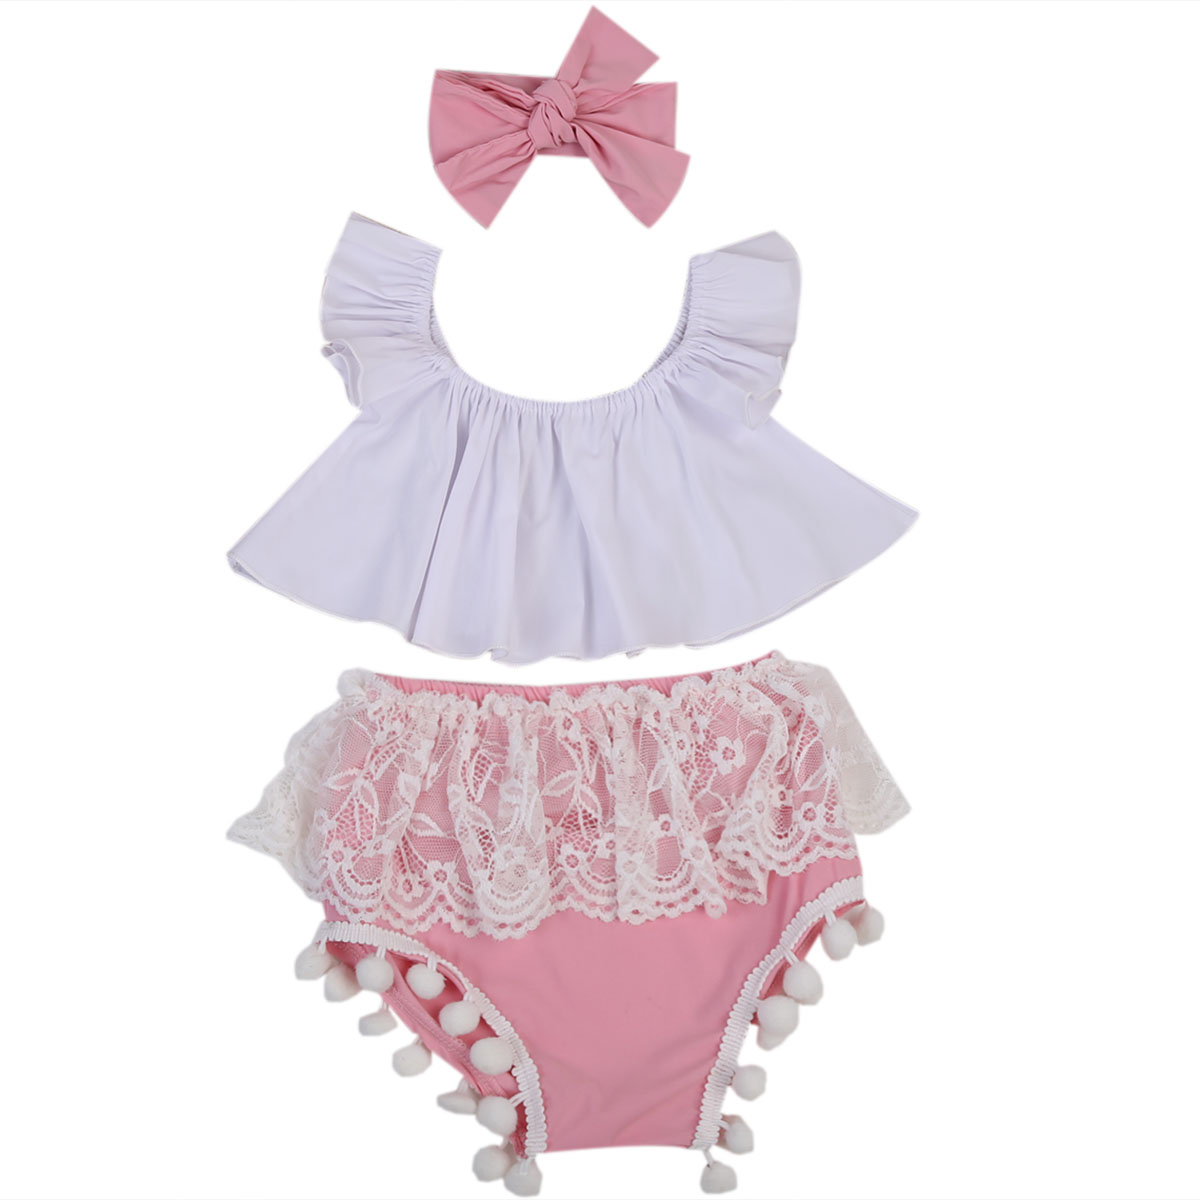 Newborn Baby Girl Clothes Ruffle Vest Top+Lace Tassel Shorts+Headband 3Pcs Sets Summer Toddler Girls Cute Cotton Suits Outfits 3pcs outfit infantil girls clothes toddler baby girl plaid ruffled tops kids girls denim shorts cute headband summer outfits set